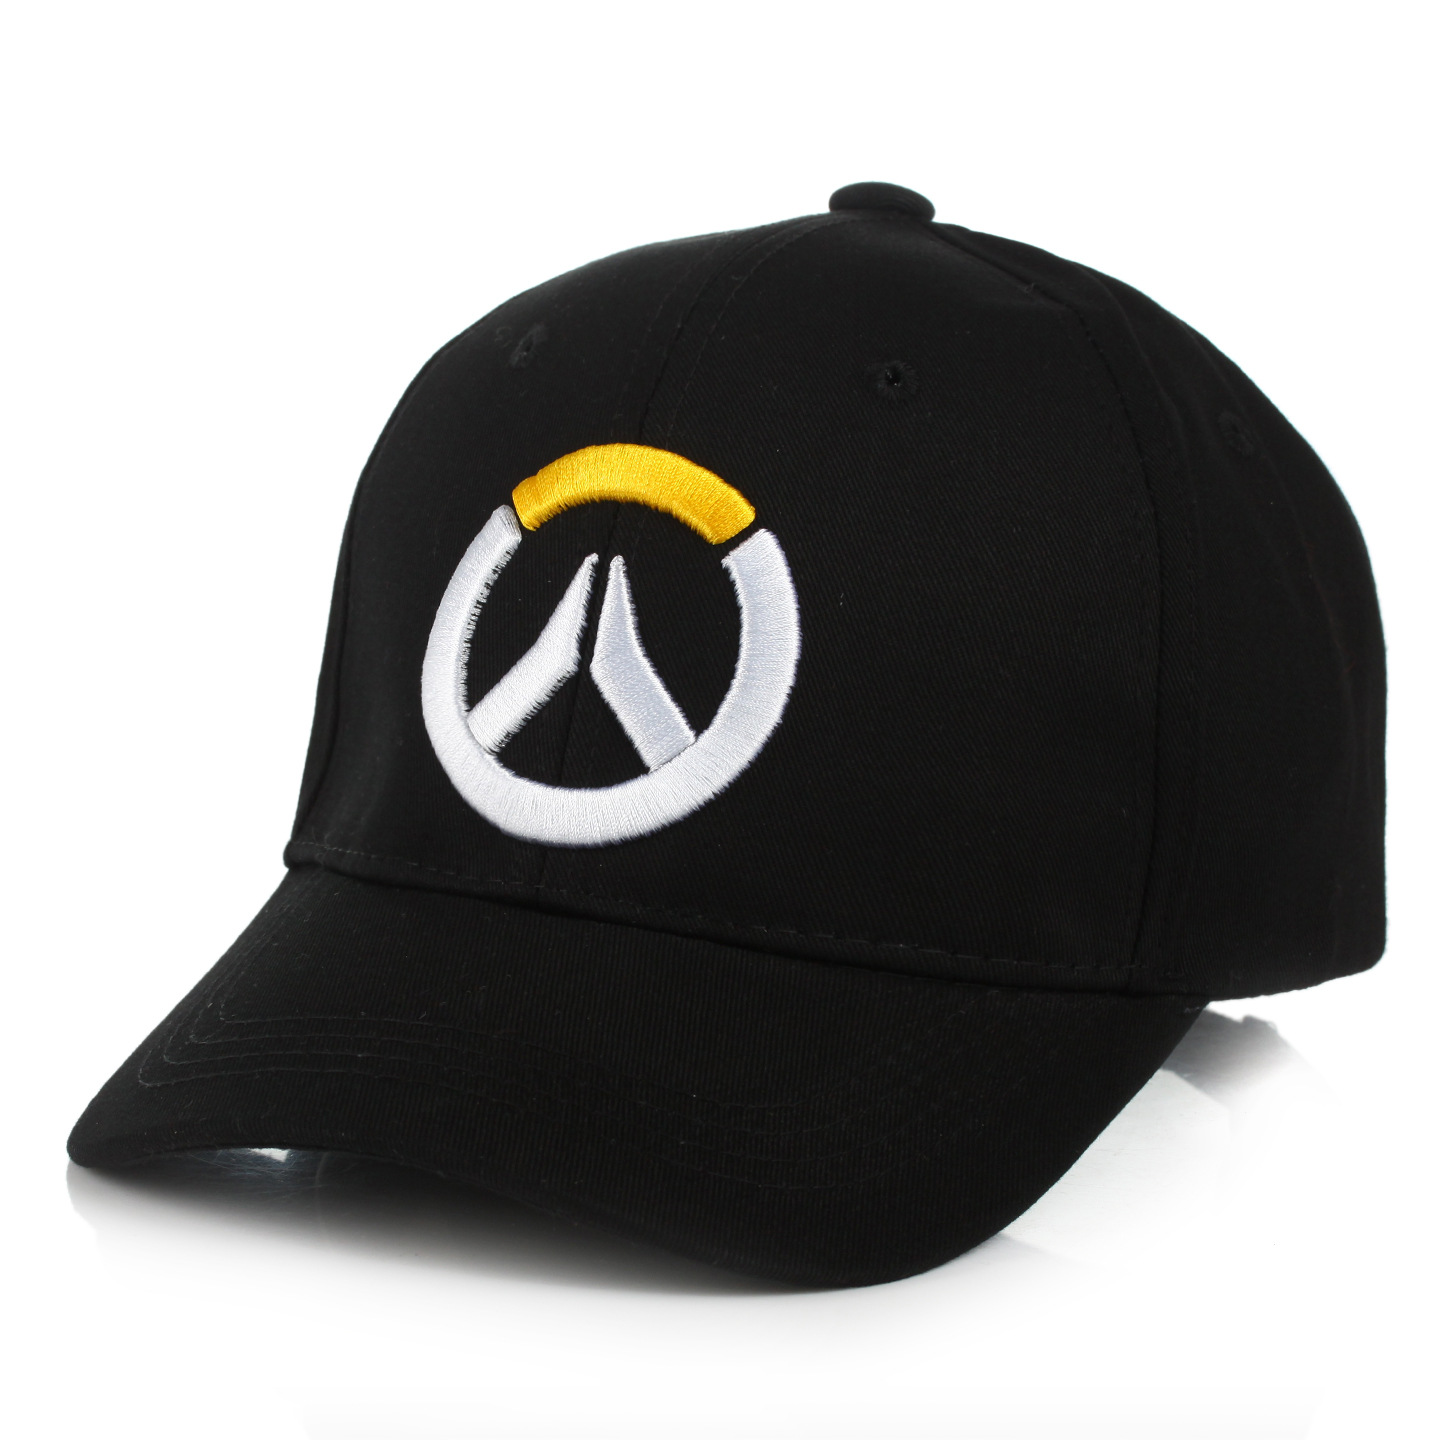 Men's Overwatch Snapback   Cap   Adjustable OW Embroidery   Baseball   Hat for Fans Outdoor Trucker   Cap   with Visors